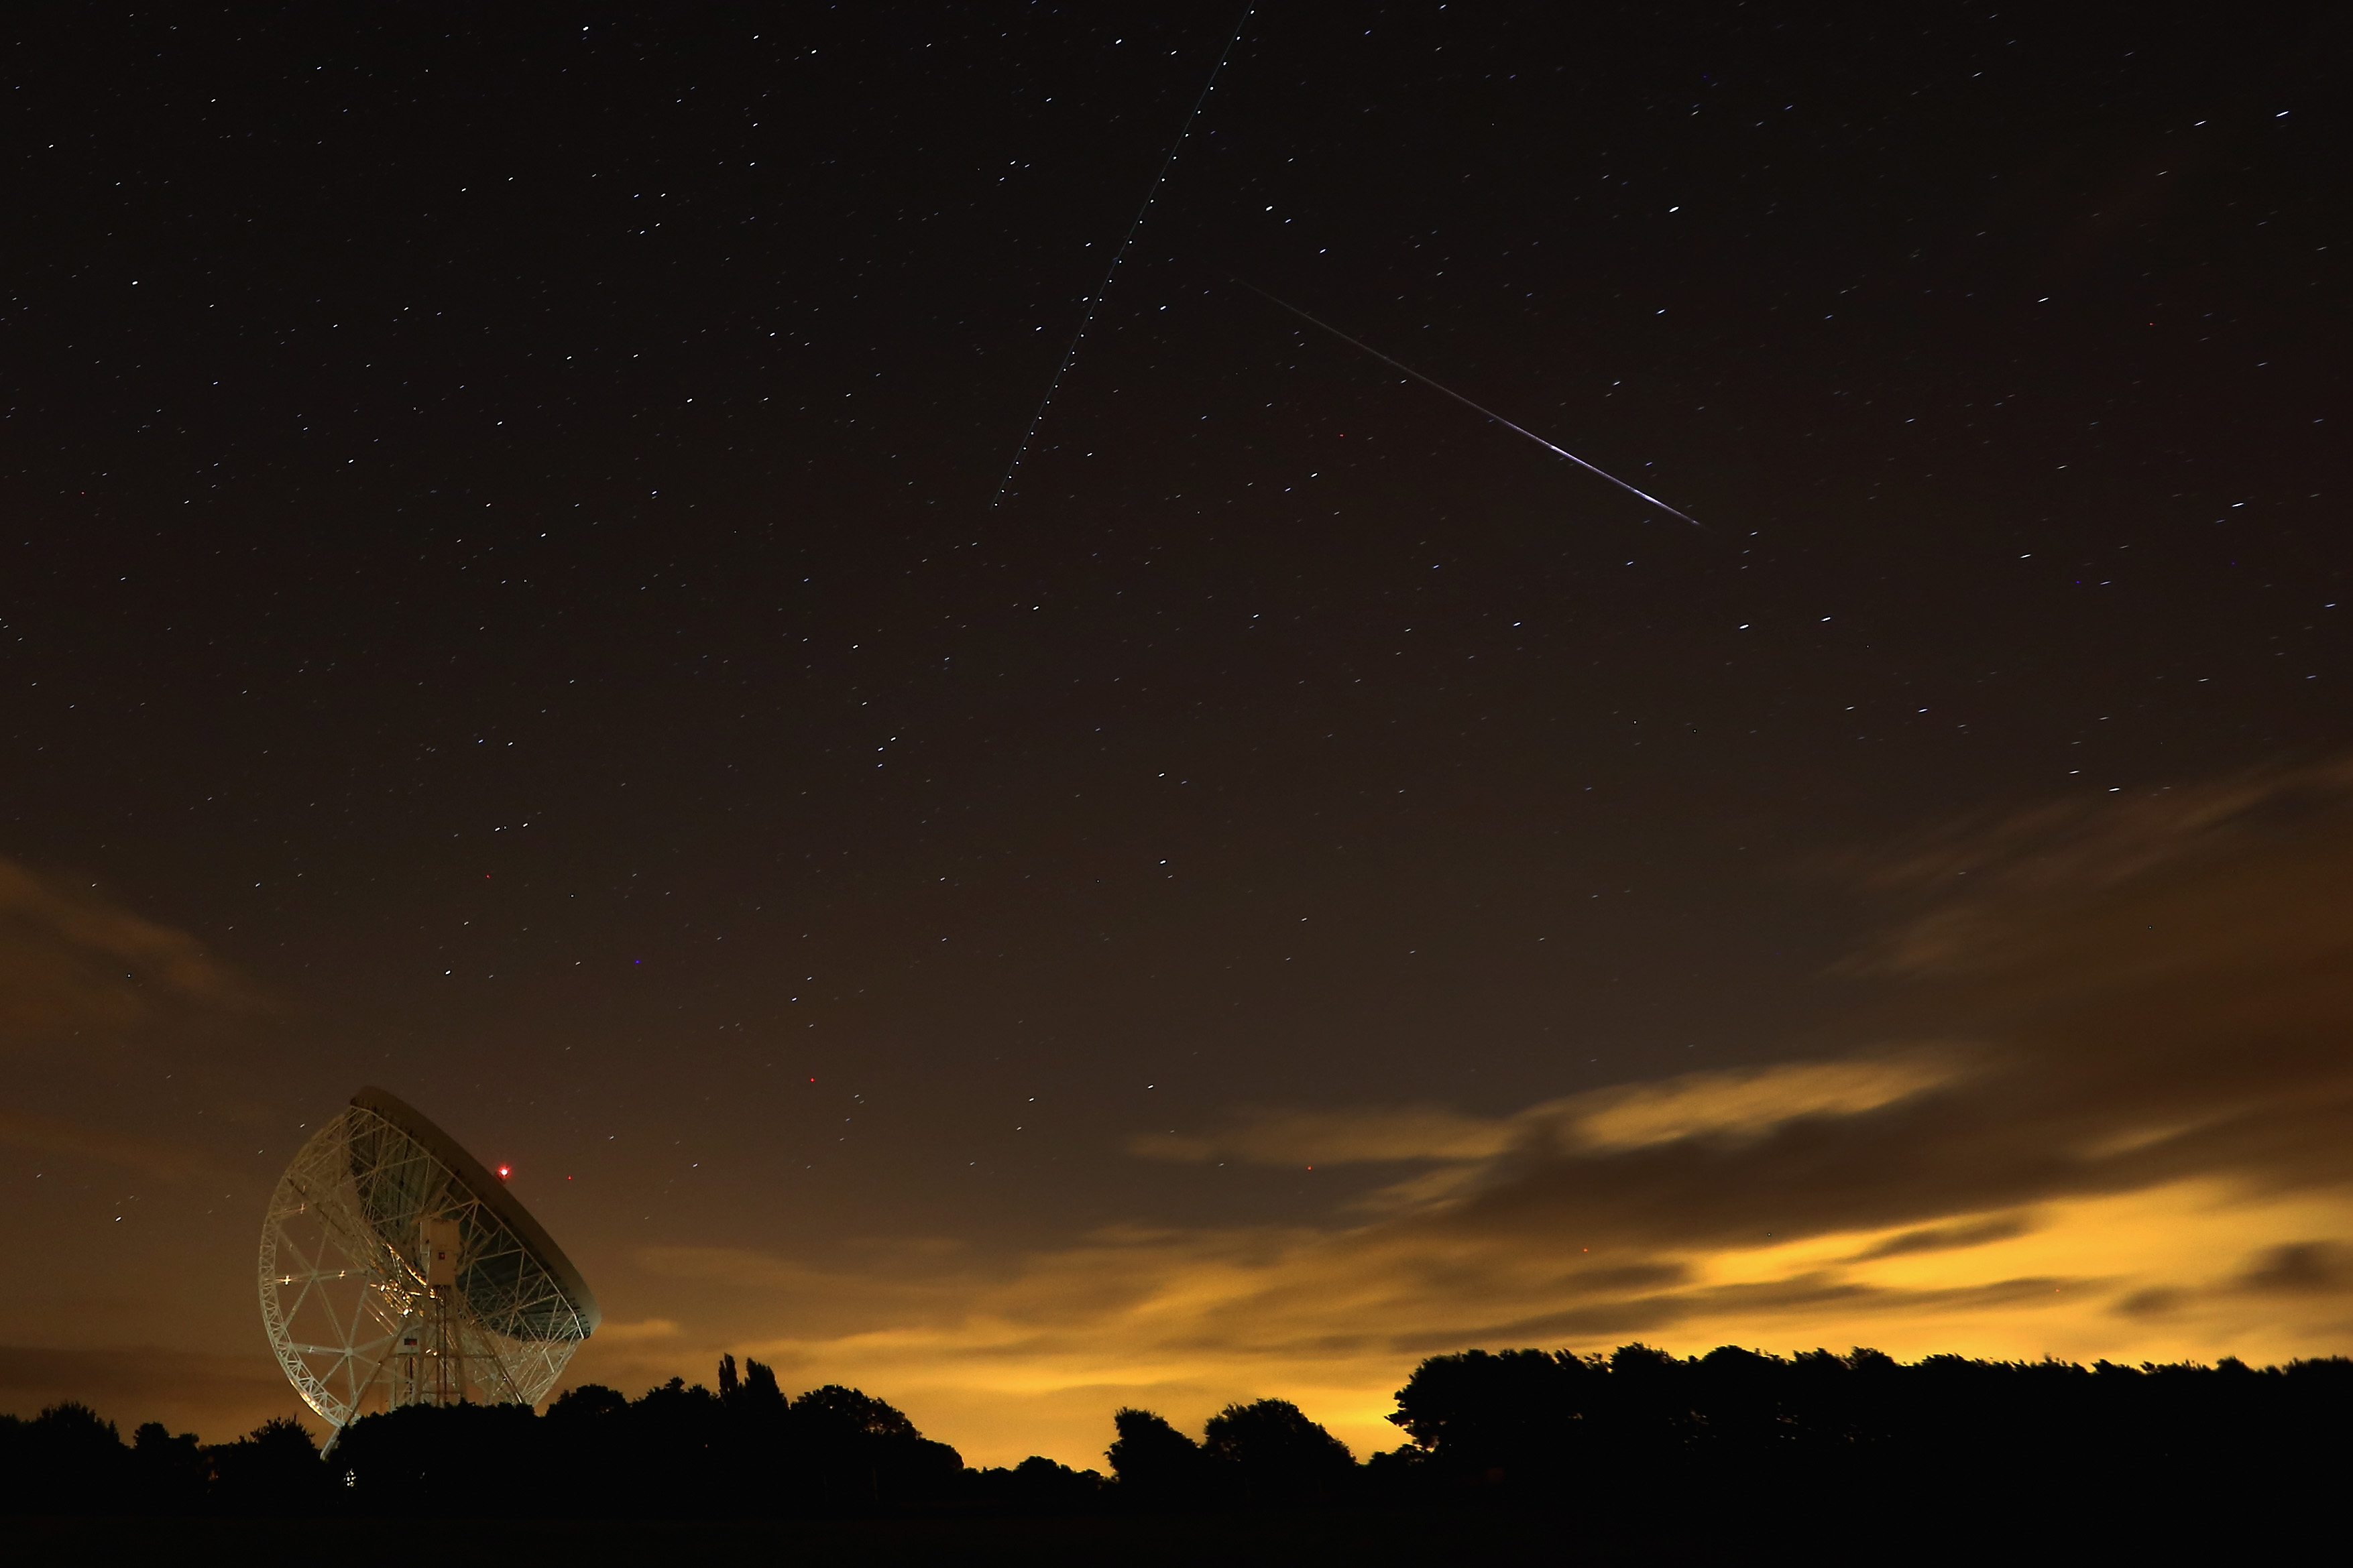 A Perseid meteor streaks across the sky over the Lovell Radio Telescope at Jodrell Bank on August 13, 2013 in Holmes Chapel, United Kingdom. (Photo by Christopher Furlong/Getty Images)